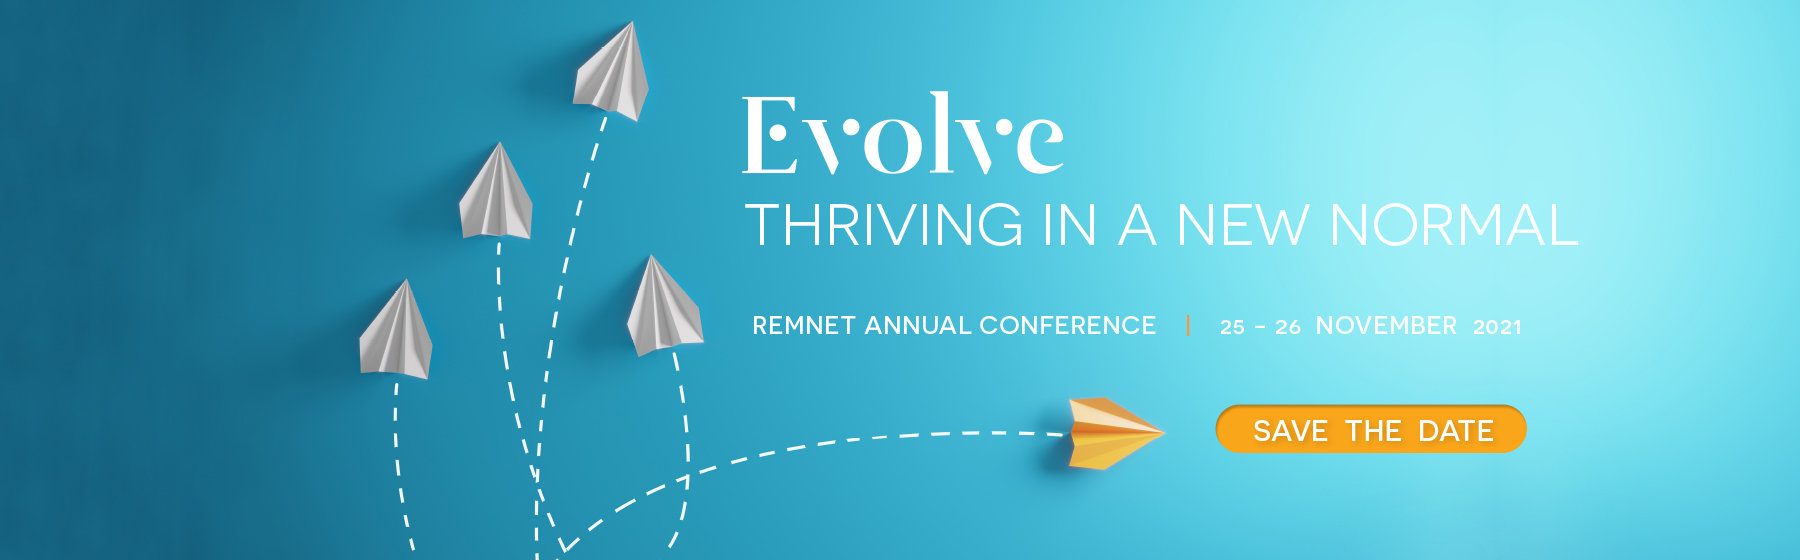 RemNet Annual Conference